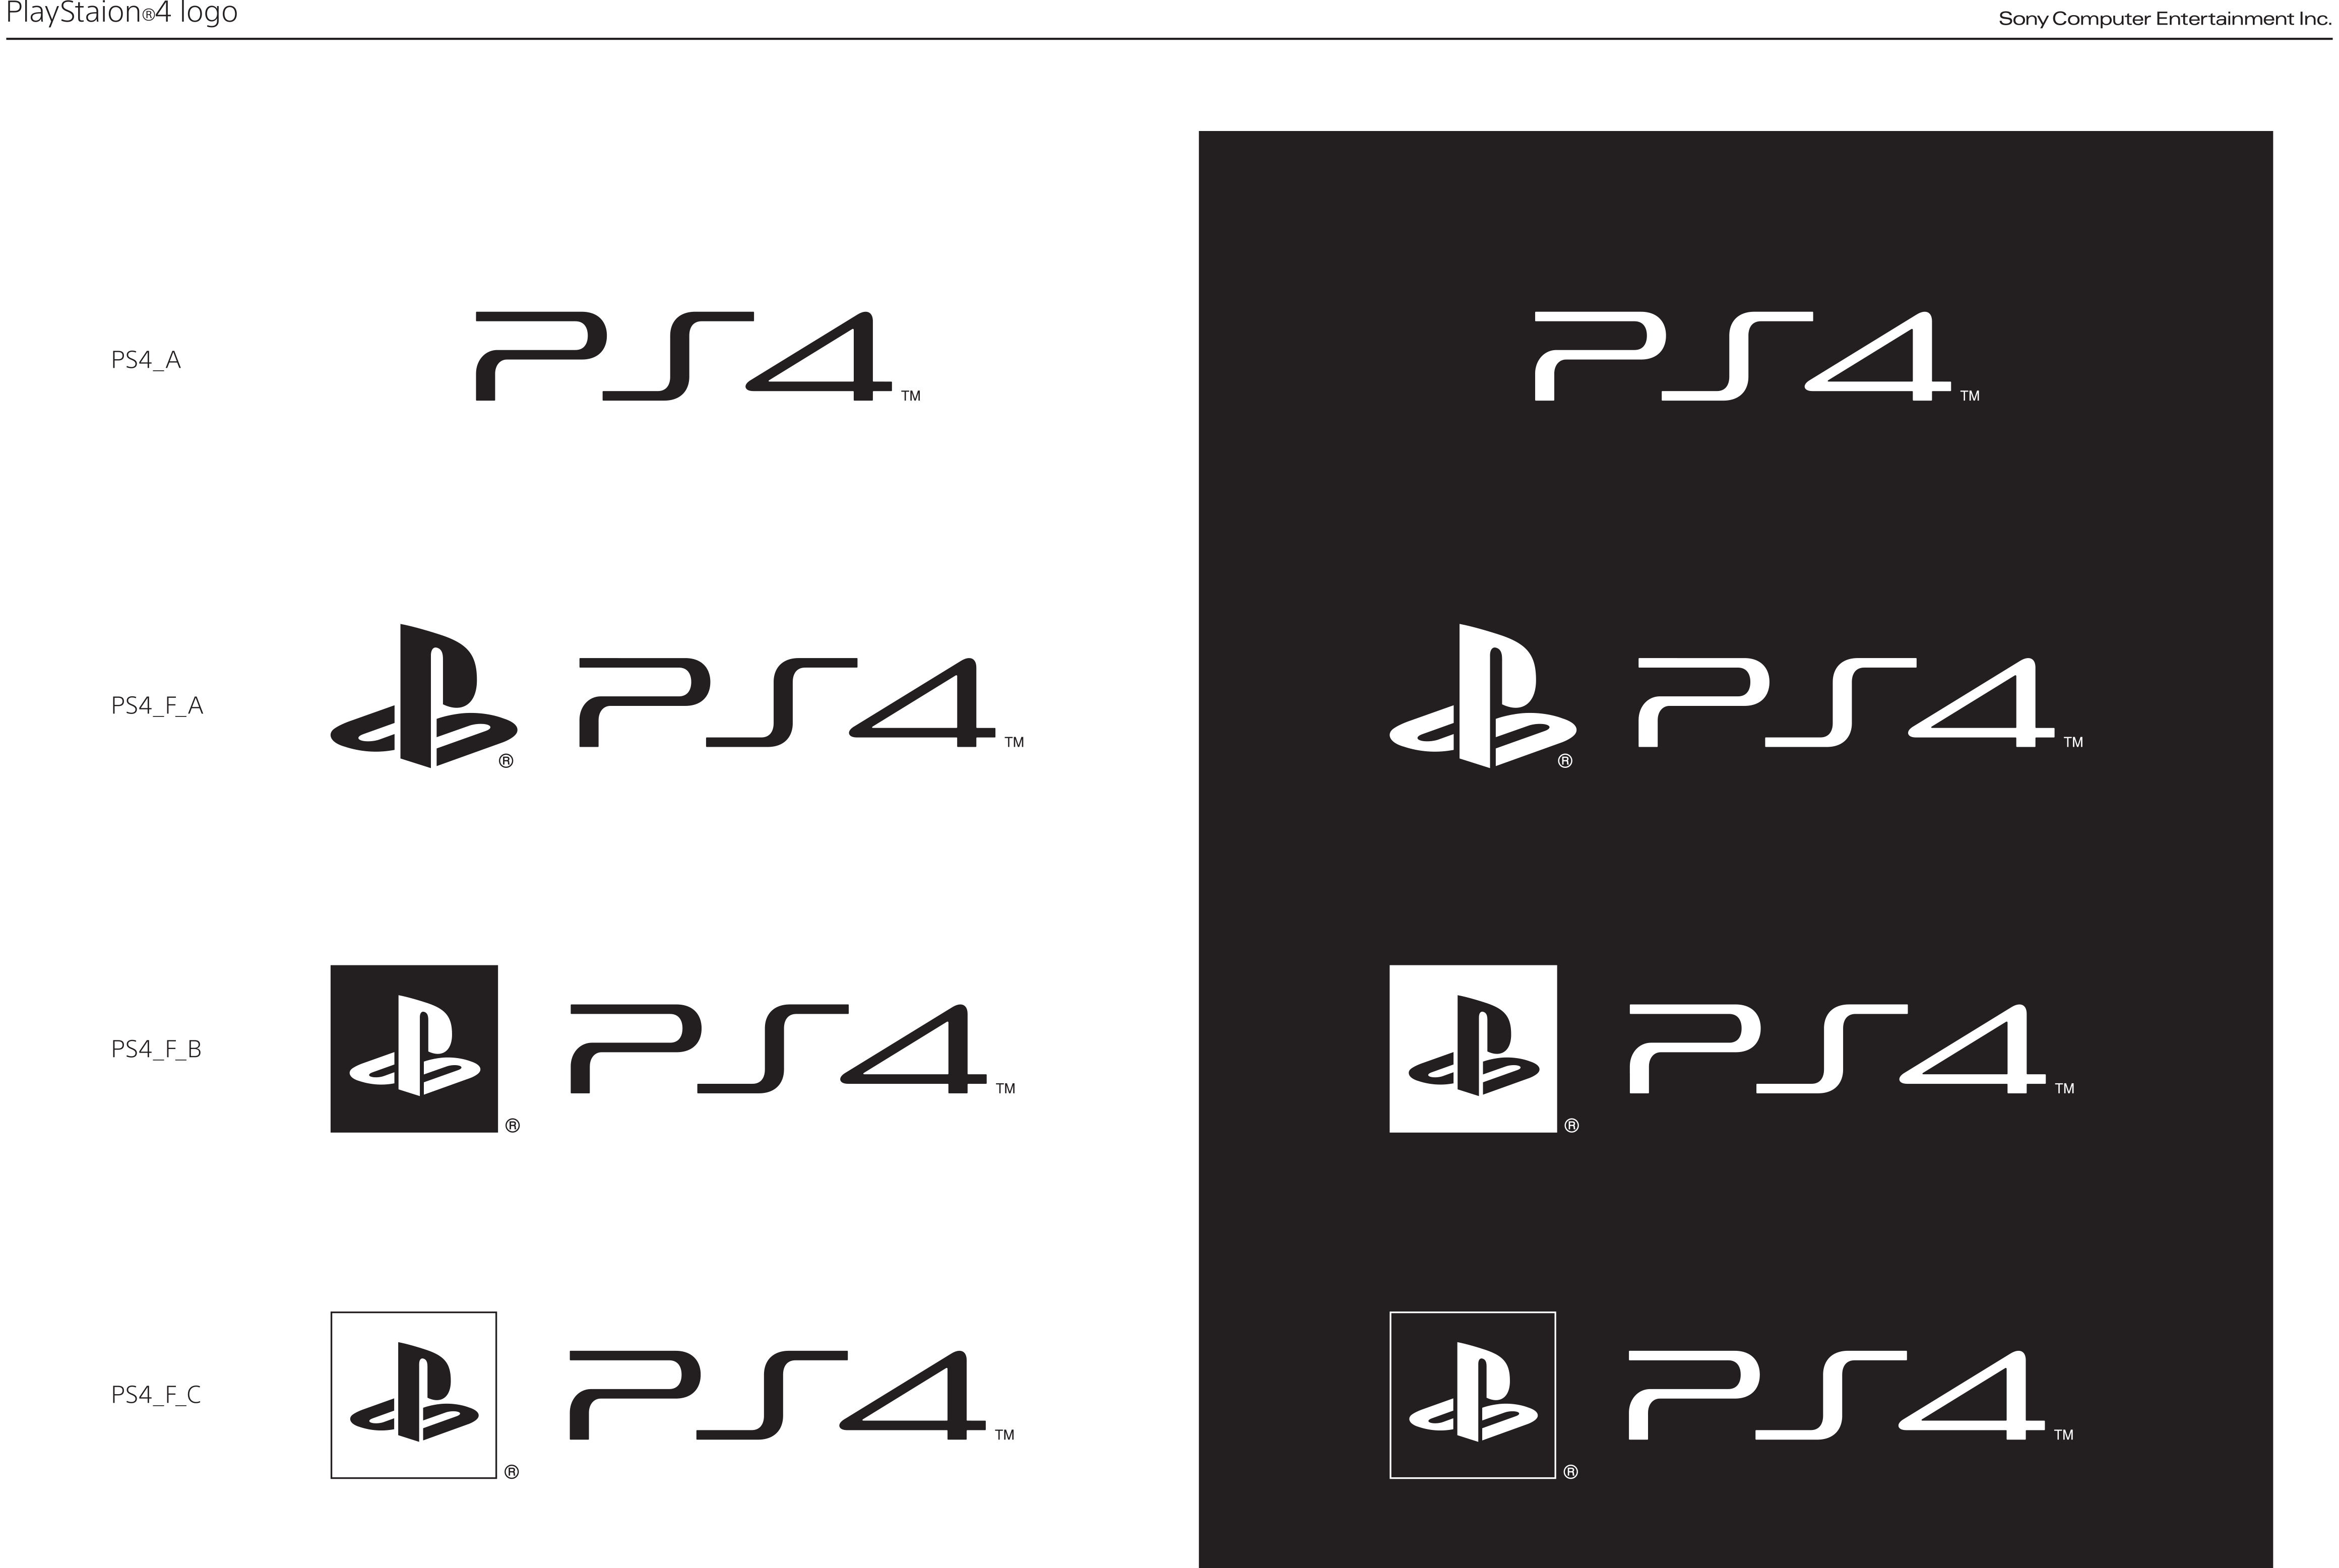 playstation 4 user interface screenshots 4 png logo 5895